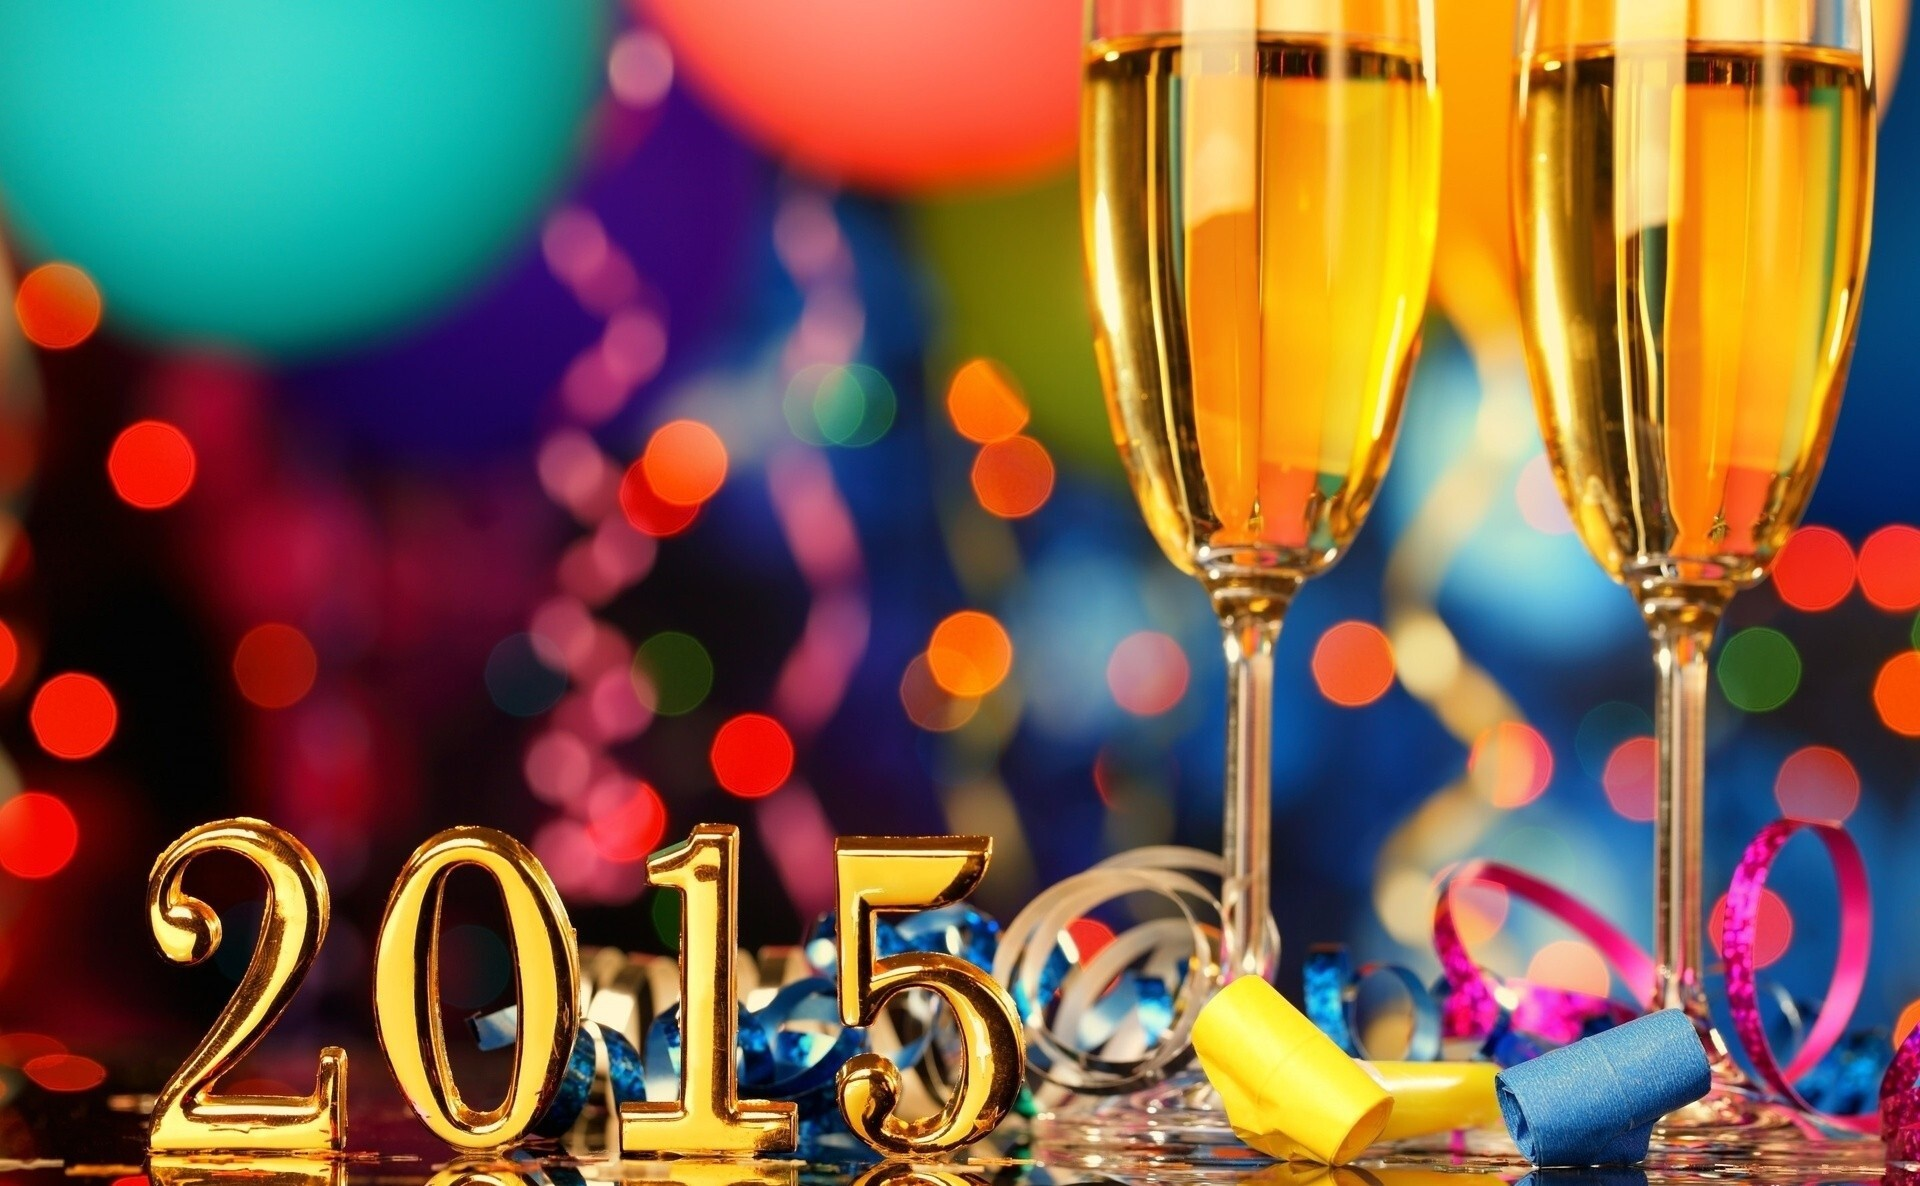 new year party wallpaper with party bear glasses hd wallpapers